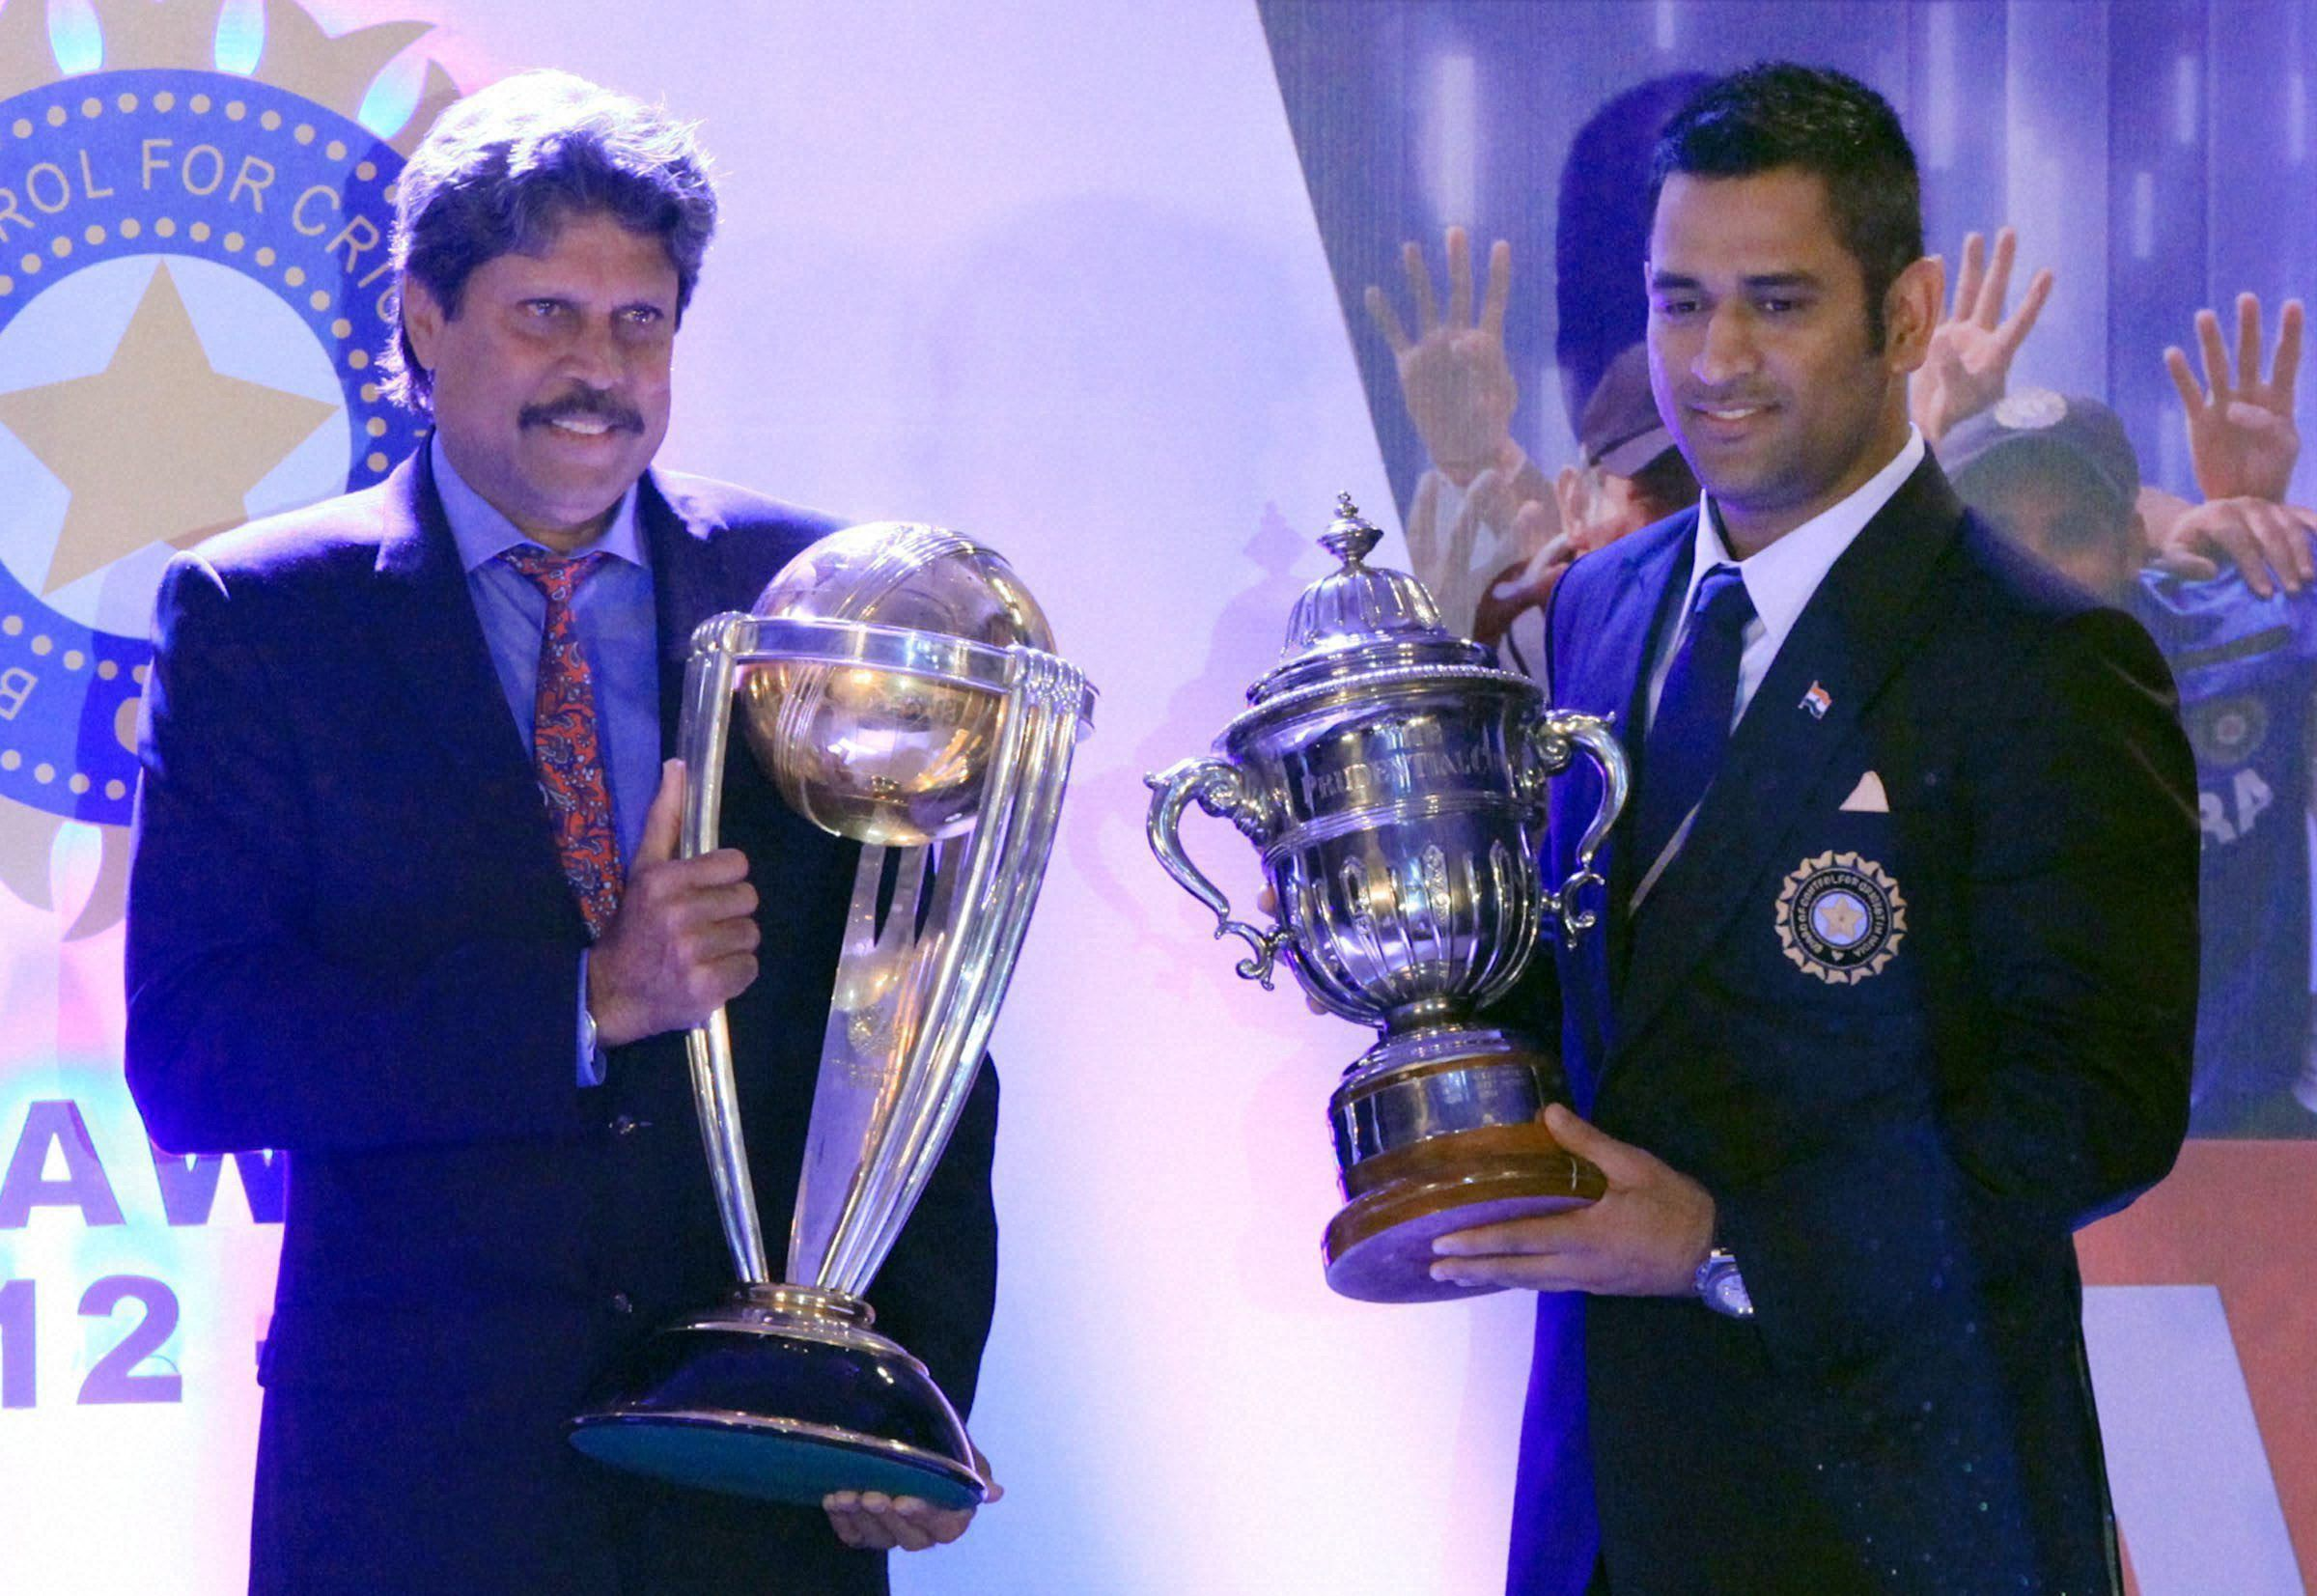 The Two Eras Kapil Dev Holding The 2011 World Cup Trophy And Ms Dhoni The One India Lifted In 1983 At The Bcci Awards Func Cricket In India Kapil Dev Cricket